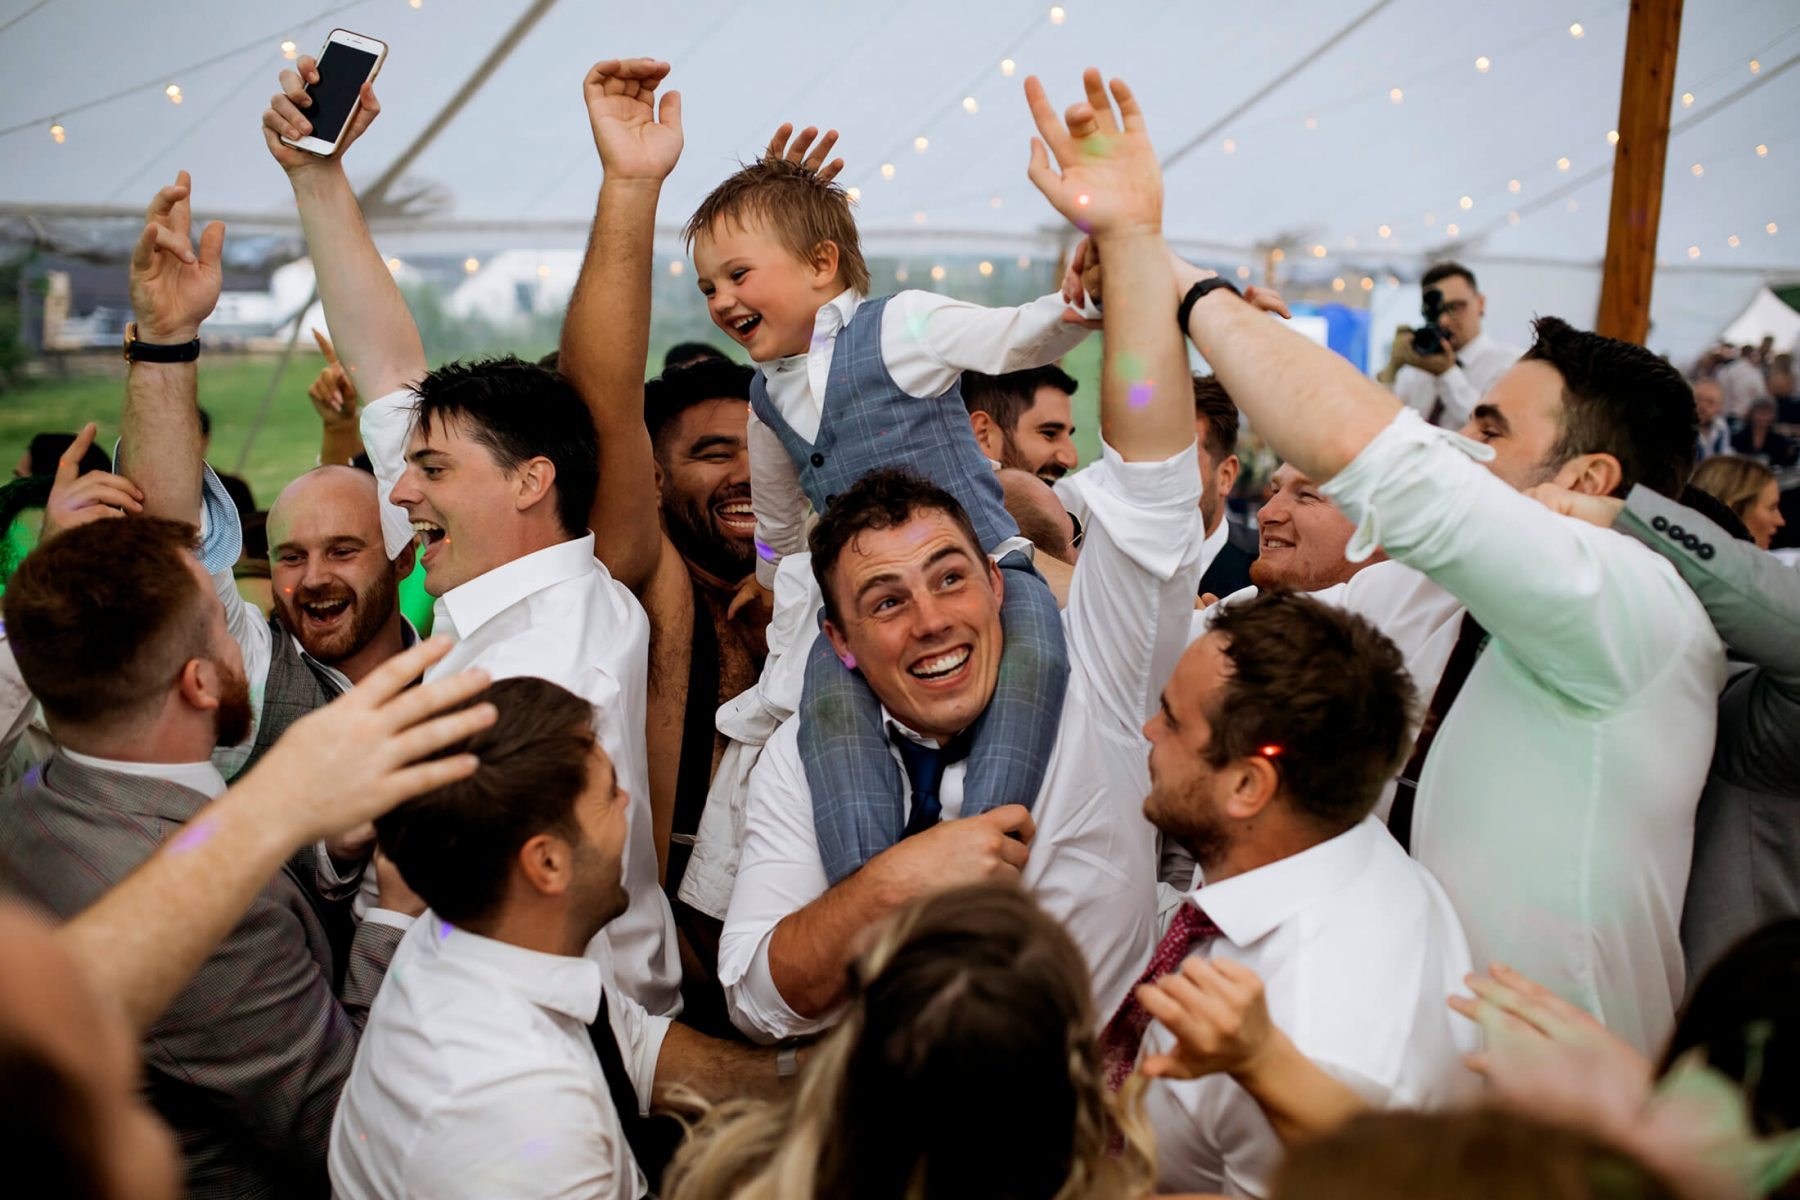 A young boy is lofted onto a mans shoulders on the dancefloor during the wedding party. Staffordshire Wedding Photographer